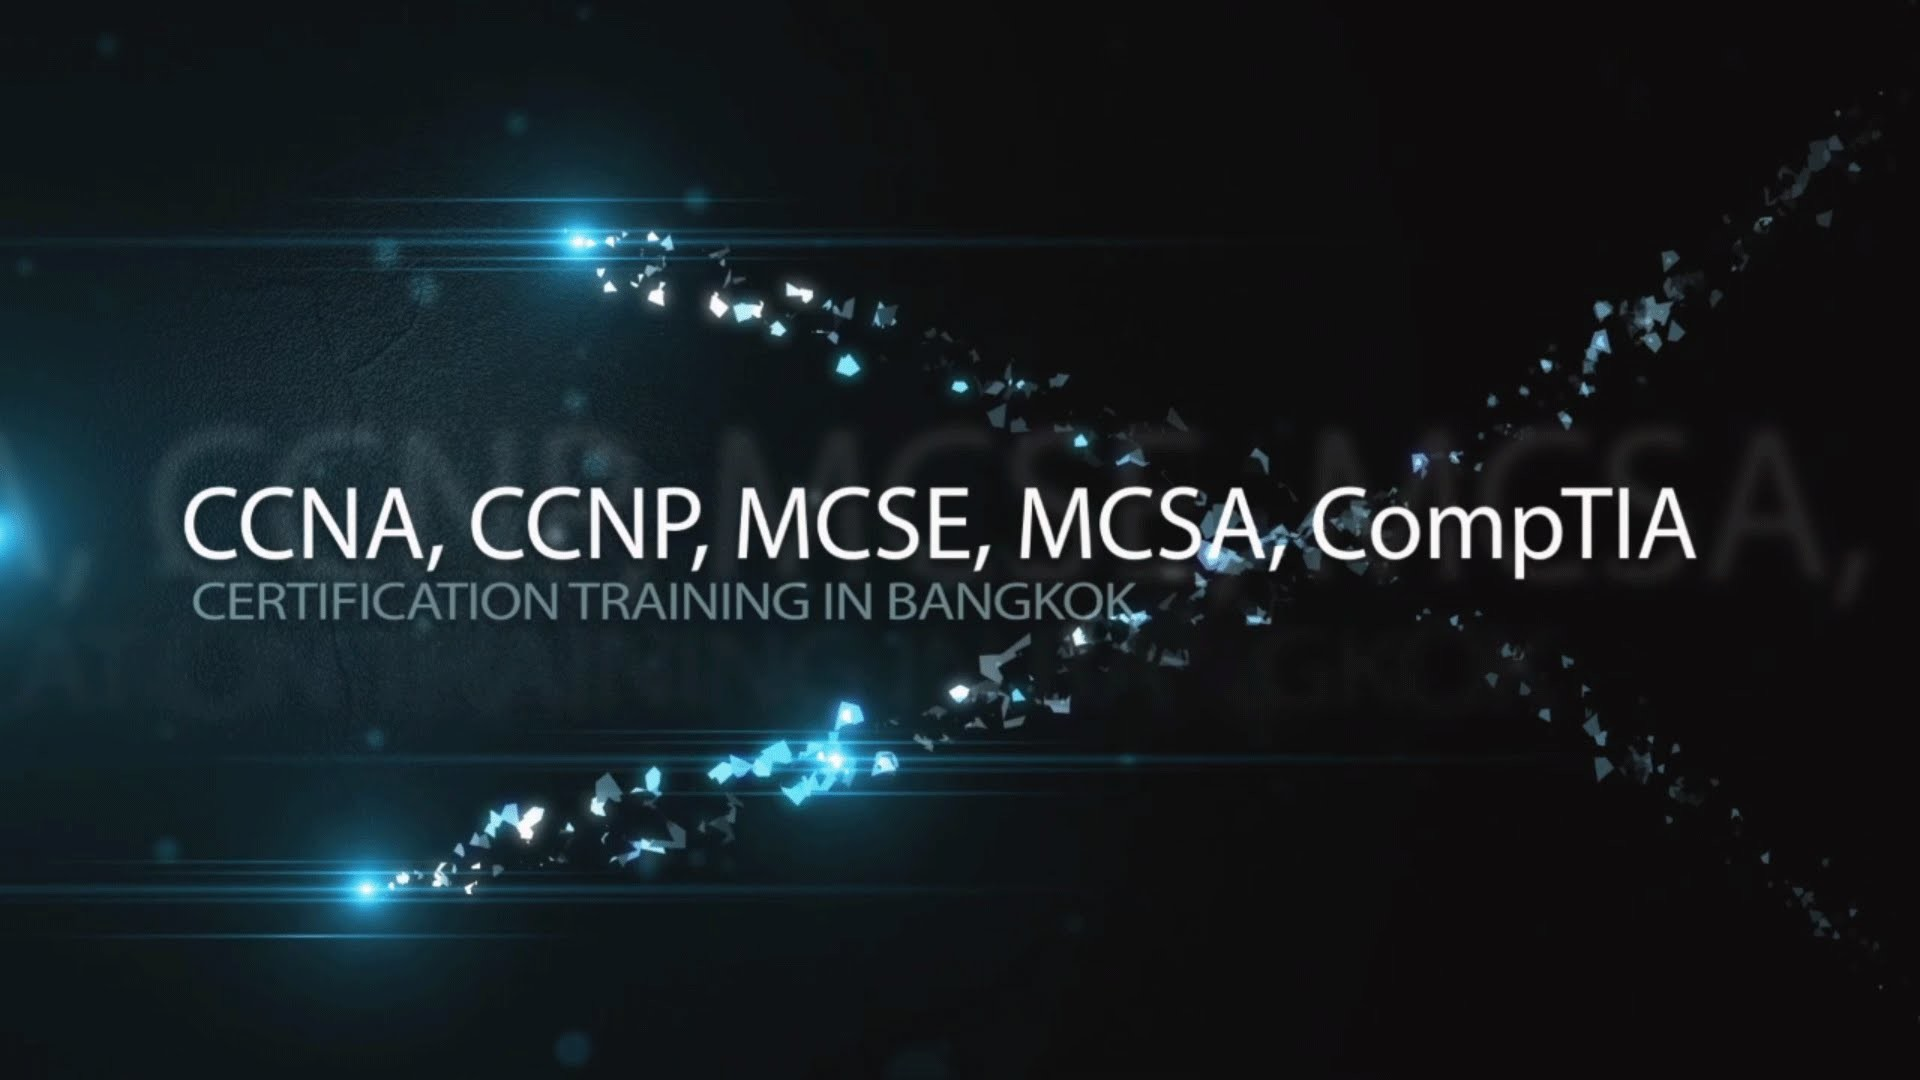 IT Track CCNA Boot Camp Review: Training in Bangkok, Thailand